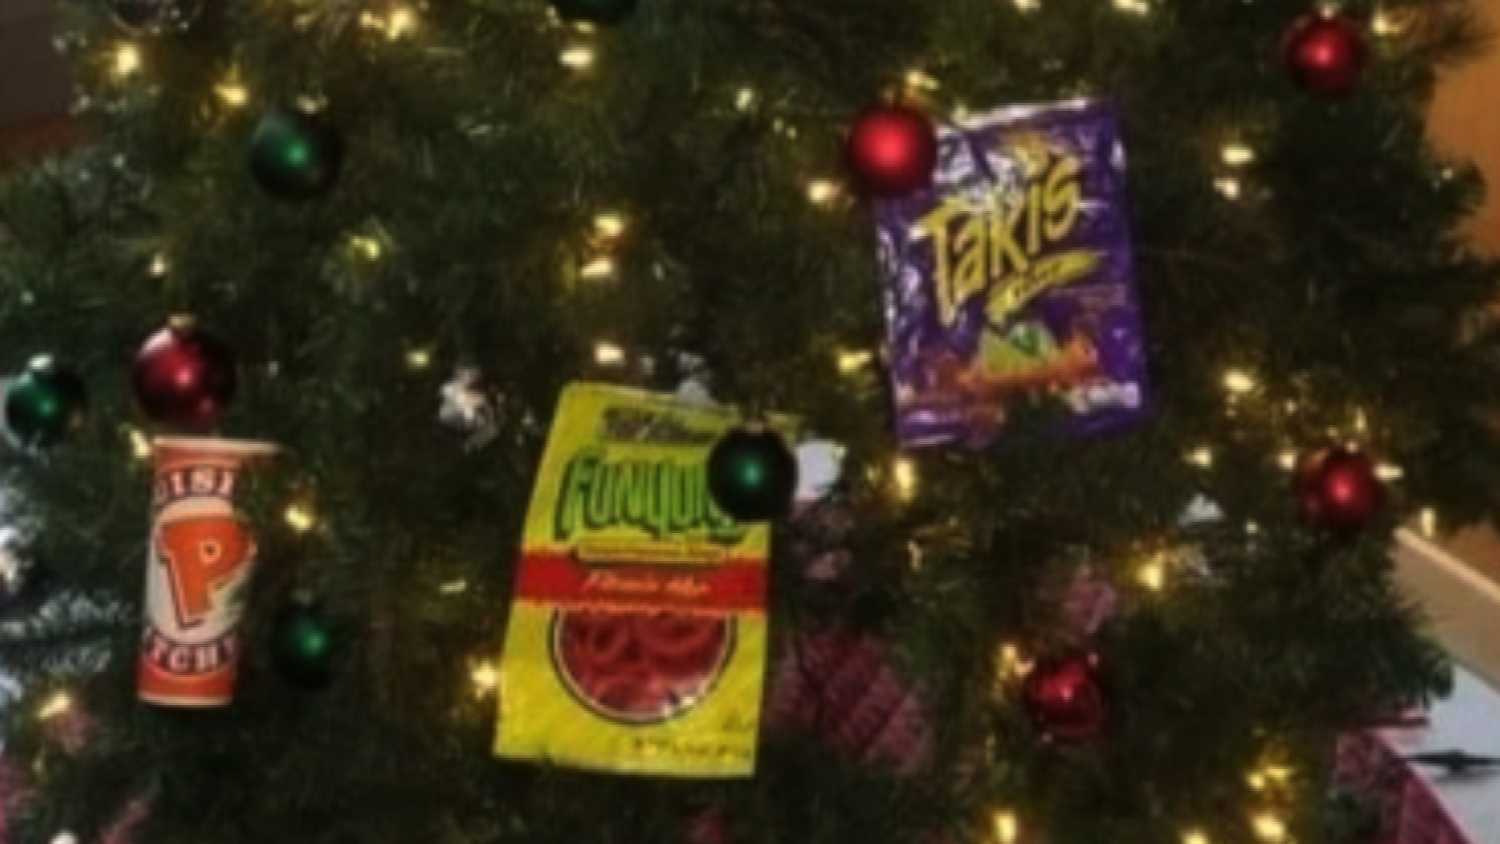 Two-Police-Officers-Placed-on-Leave-after-'racist'-Christmas-Tree-Display-Sparks-Outrage.jpg